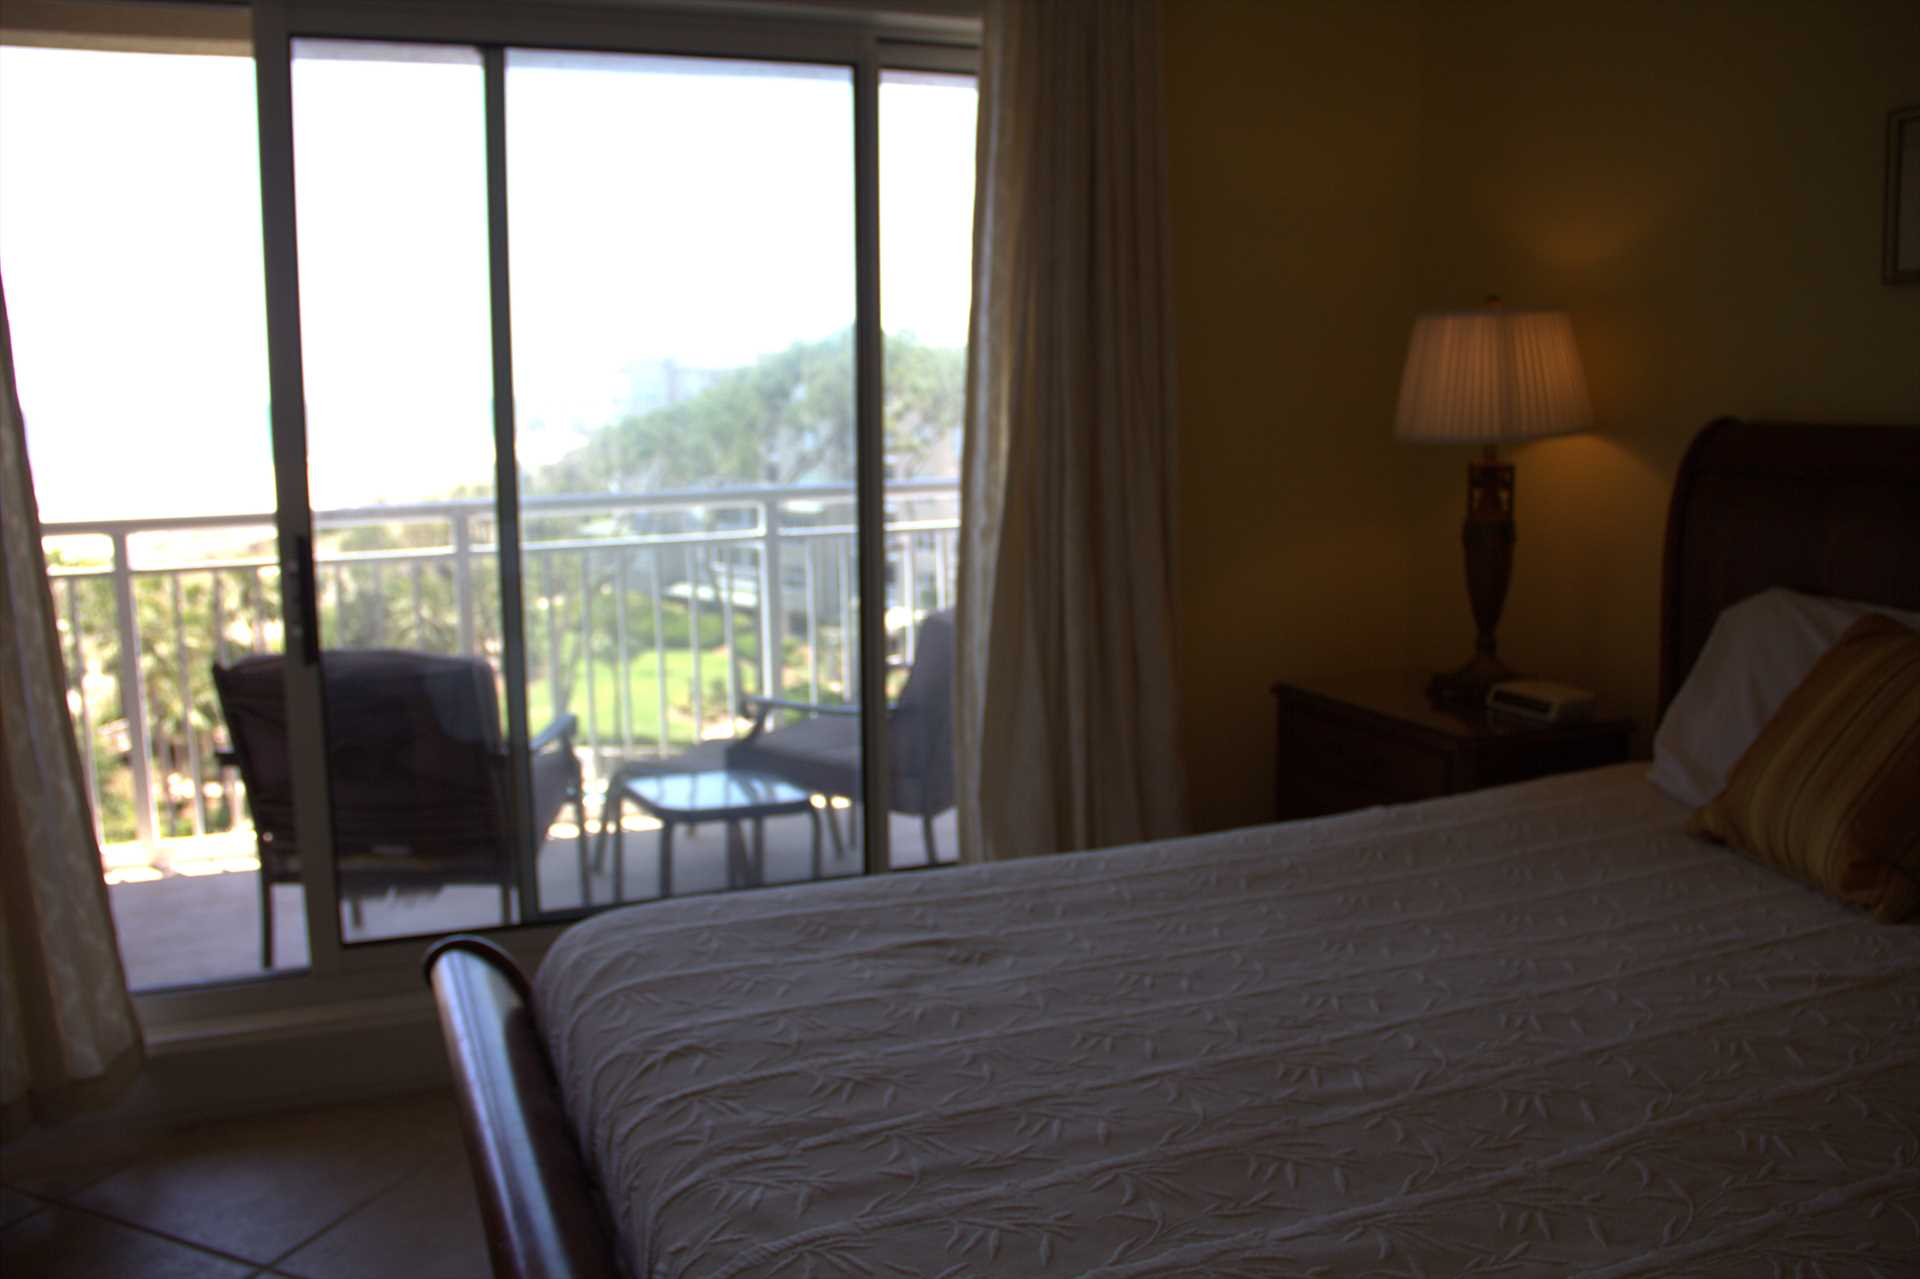 From the bed in this master bedroom you can see the ocean